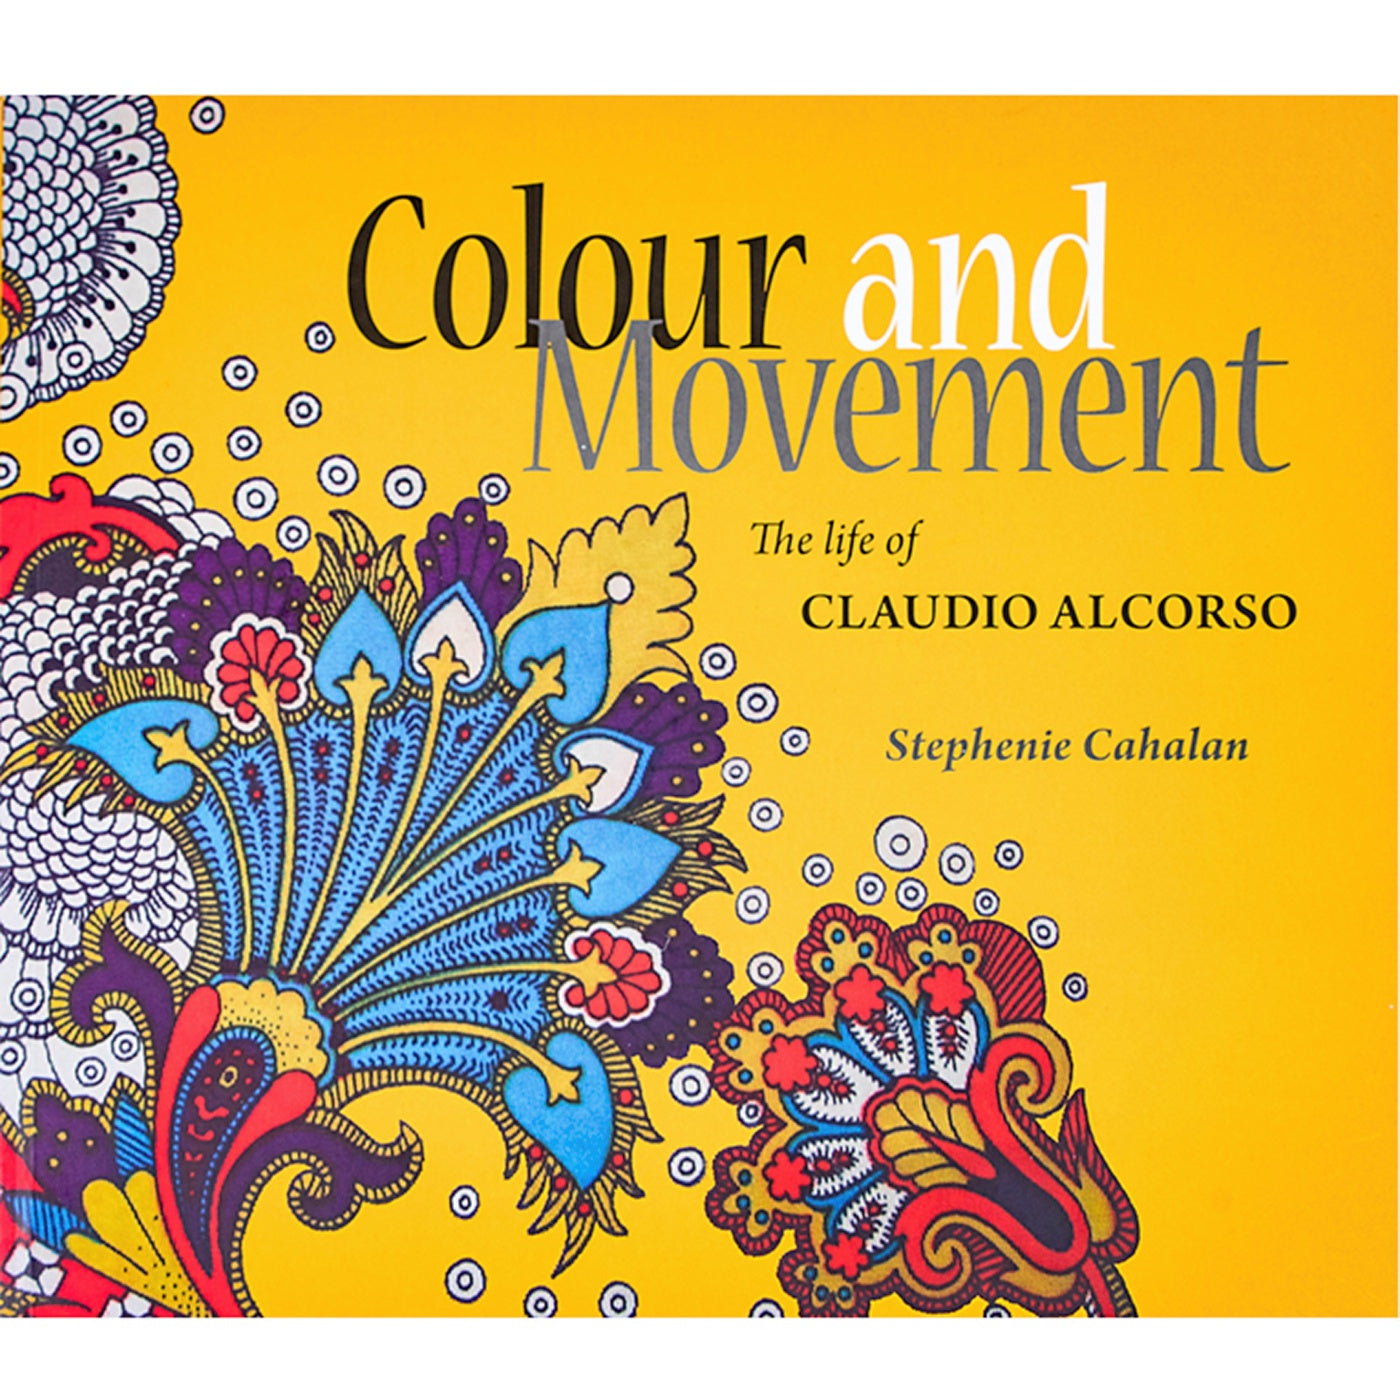 Colour and Movement, The Life of Claudio Alcorso